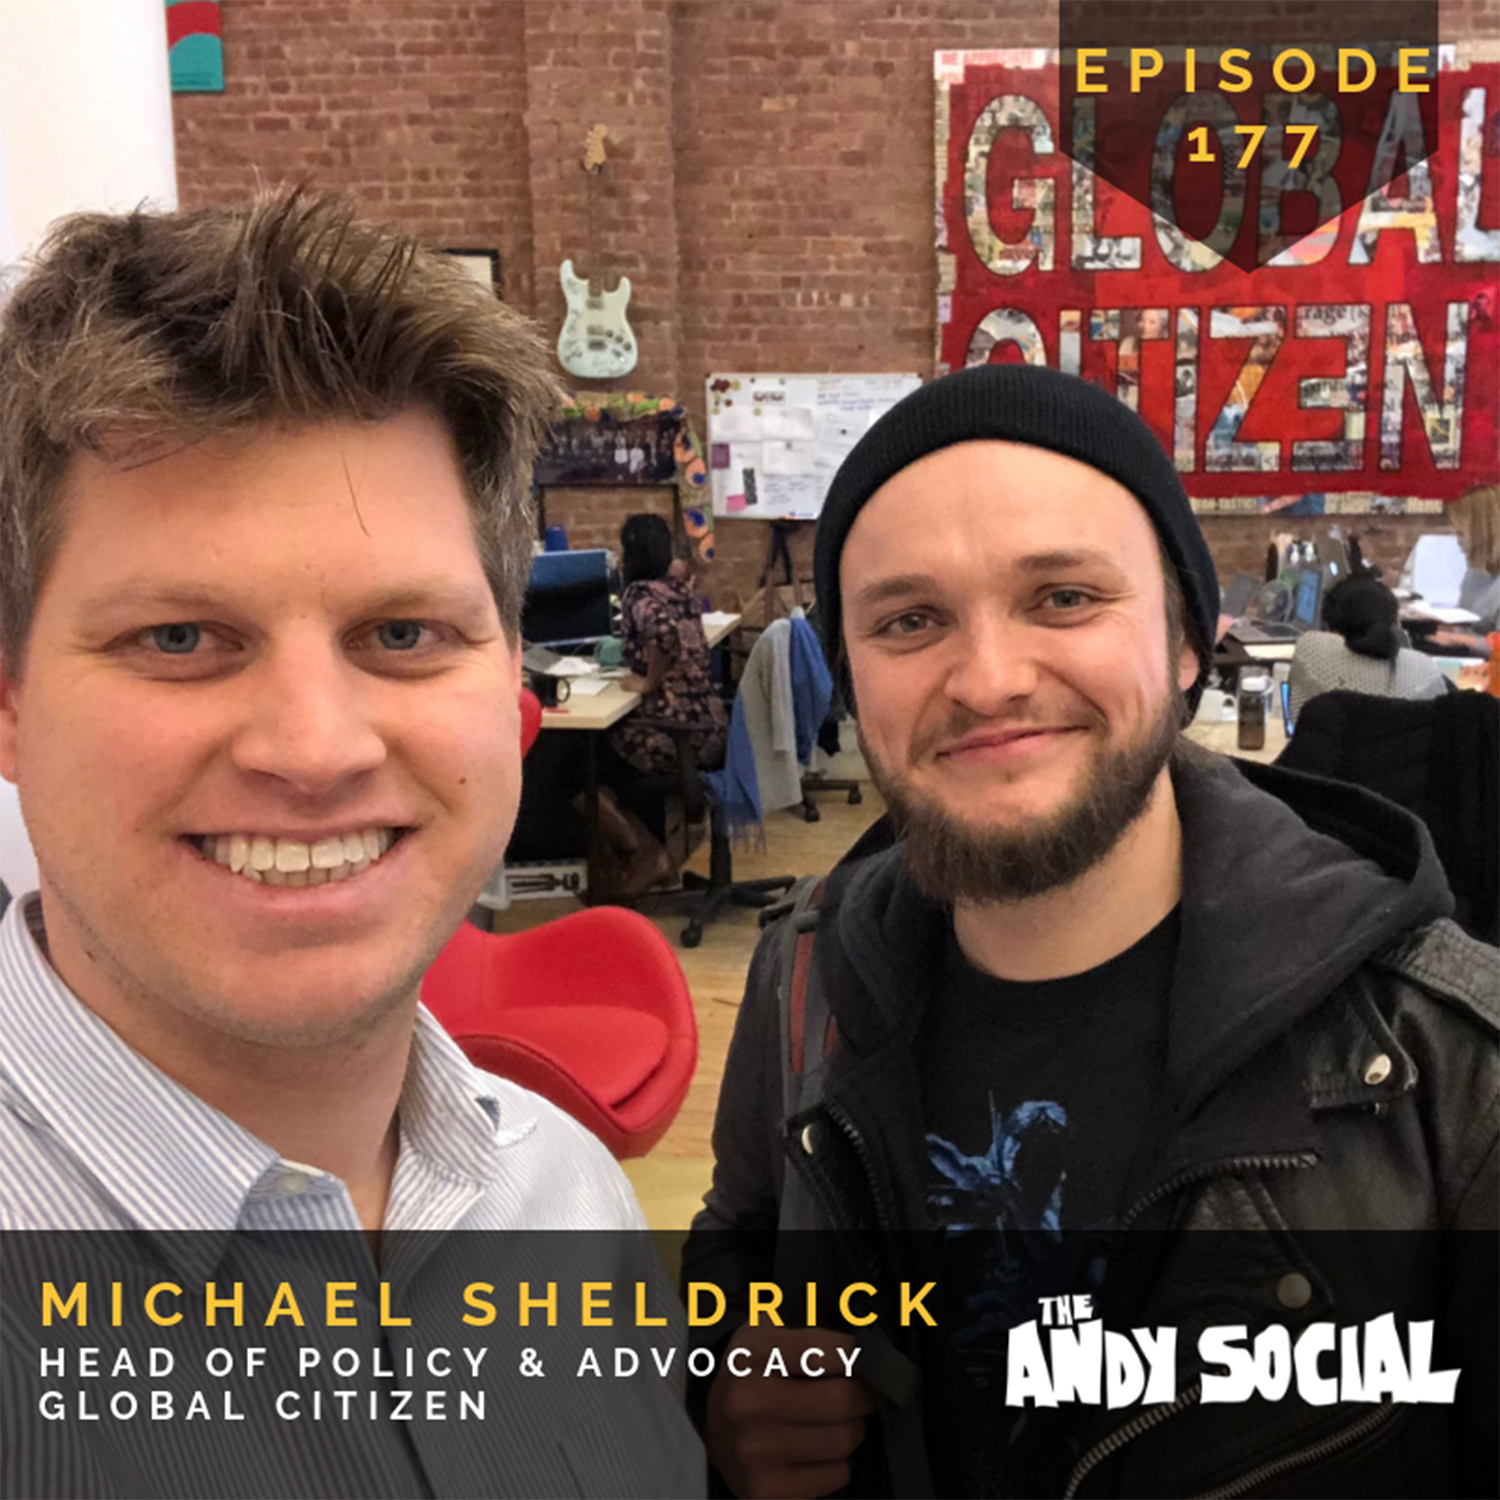 The Andy Social Podcast | Podbay